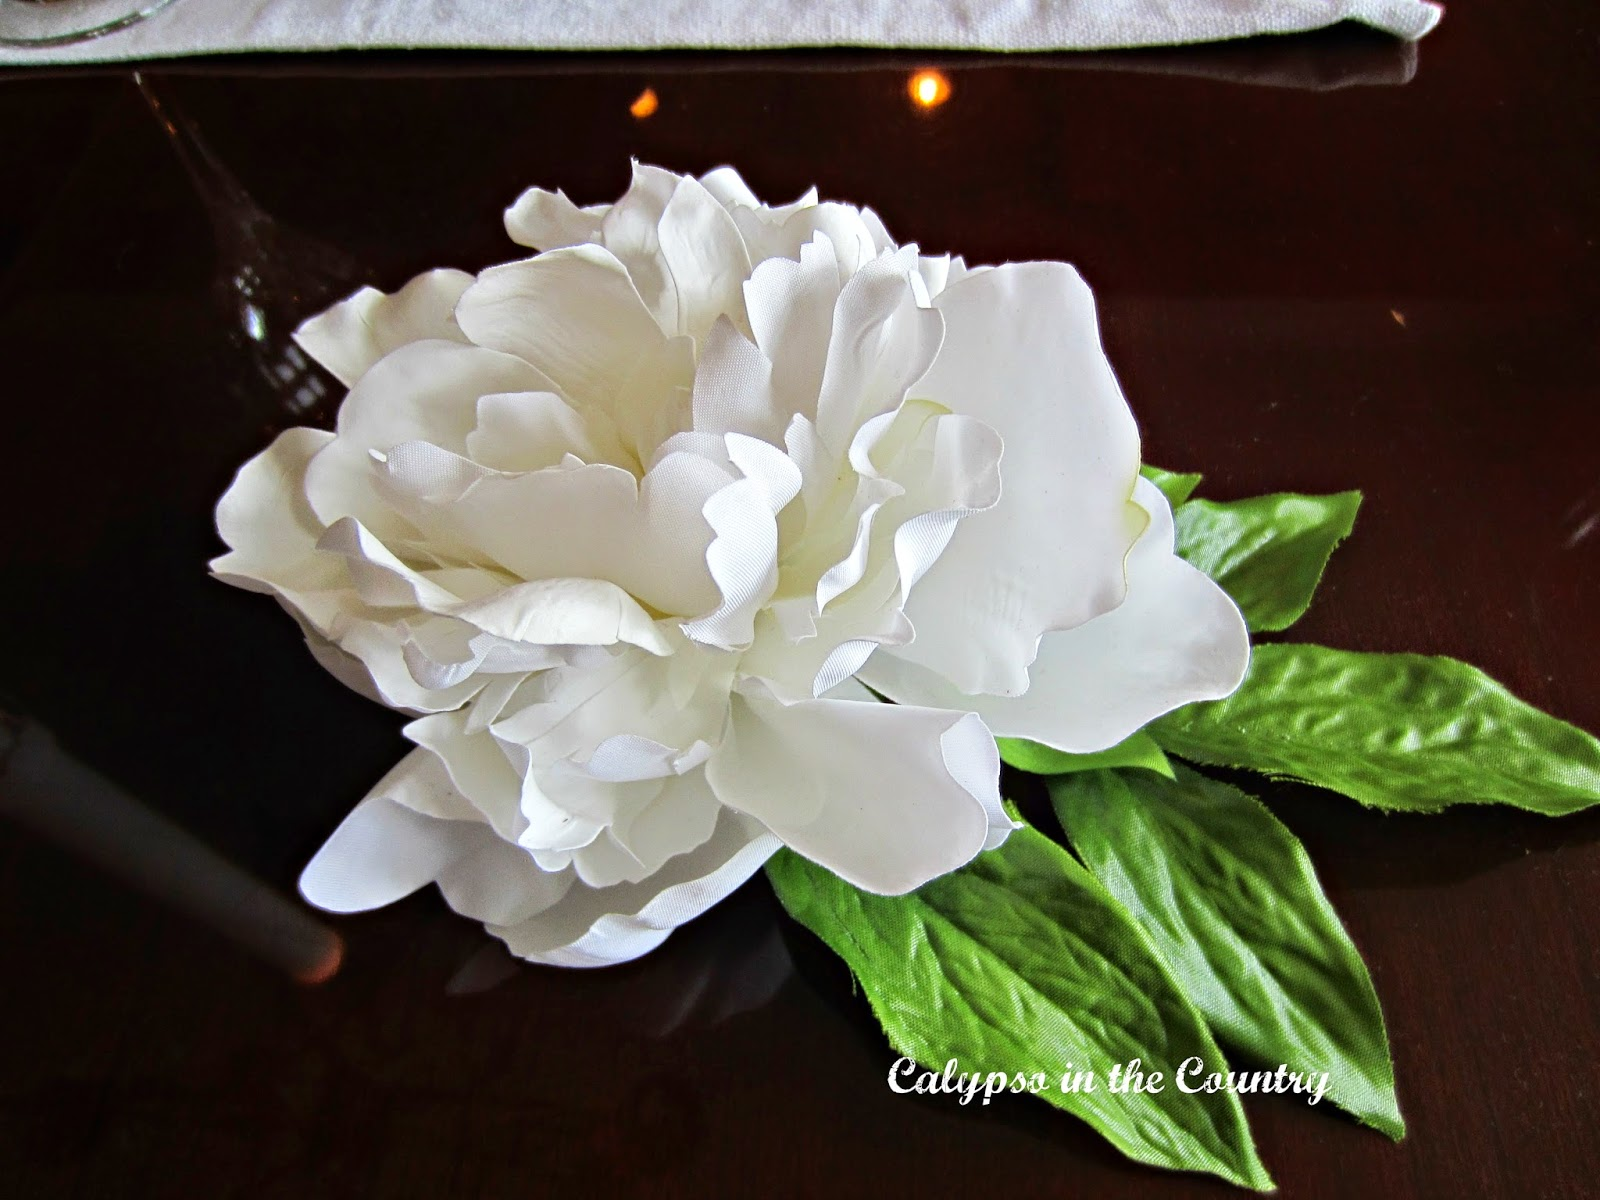 White Peony - One of Jackie Kennedy's Favorite Flowers